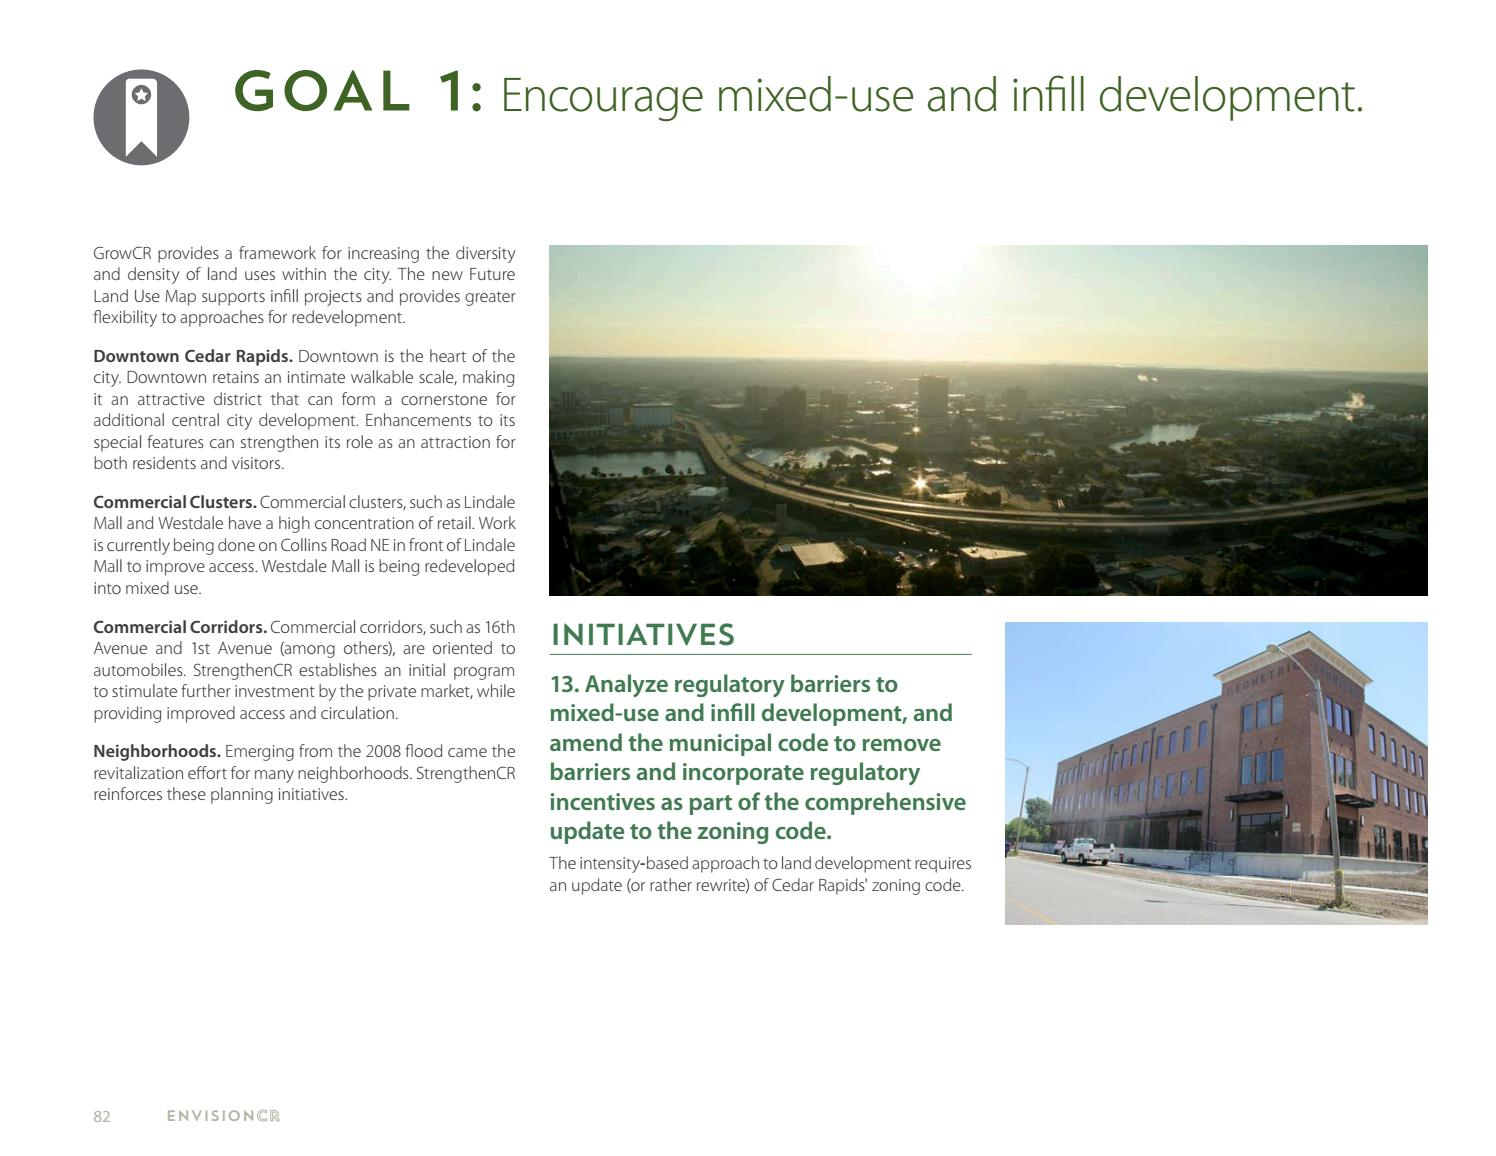 EnvisionCR by RDG Planning & Design - issuu on map of windsor heights iowa, map of ft dodge iowa, map of coggon iowa, map of lemars iowa, map of panora iowa, map of boxholm iowa, map of sergeant bluff iowa, map of strawberry point iowa, map of garnavillo iowa, map of monona iowa, map of dike iowa, map of elk horn iowa, map of correctionville iowa, map of clutier iowa, map of drakesville iowa, map of keota iowa, map of larchwood iowa, map of lincoln iowa, map of letts iowa, map of tripoli iowa,